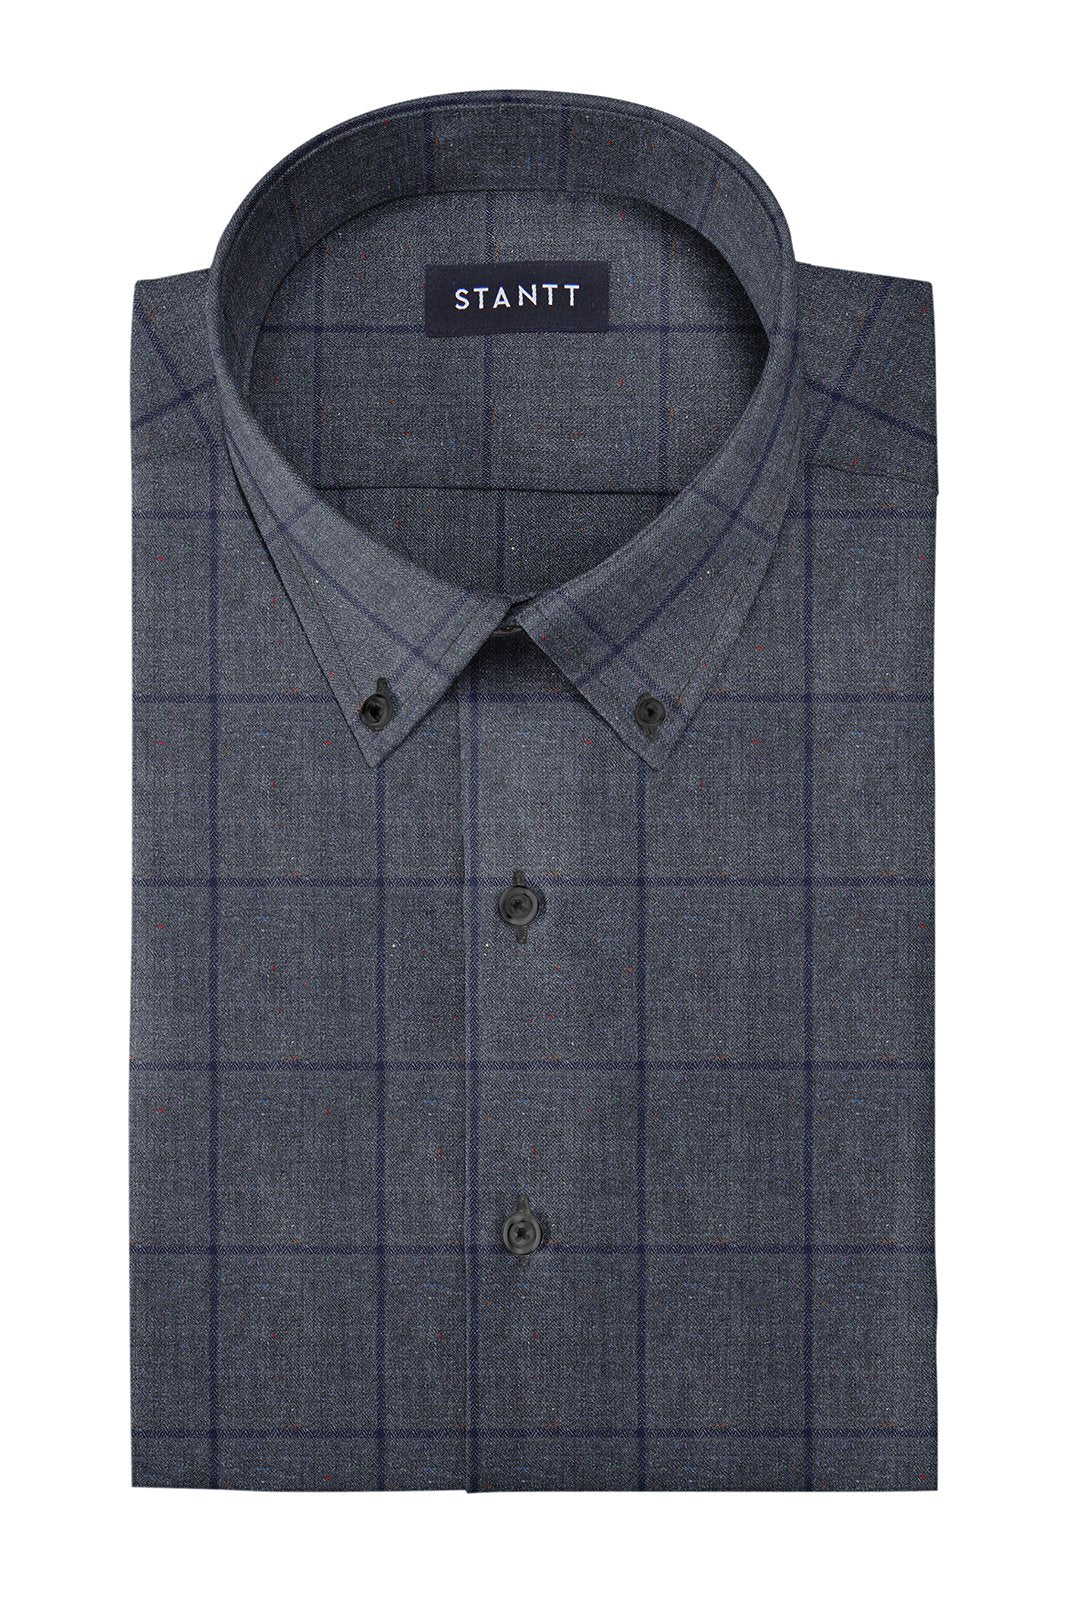 Donegal Grey Oversized Check: Button-Down Collar, Barrel Cuff